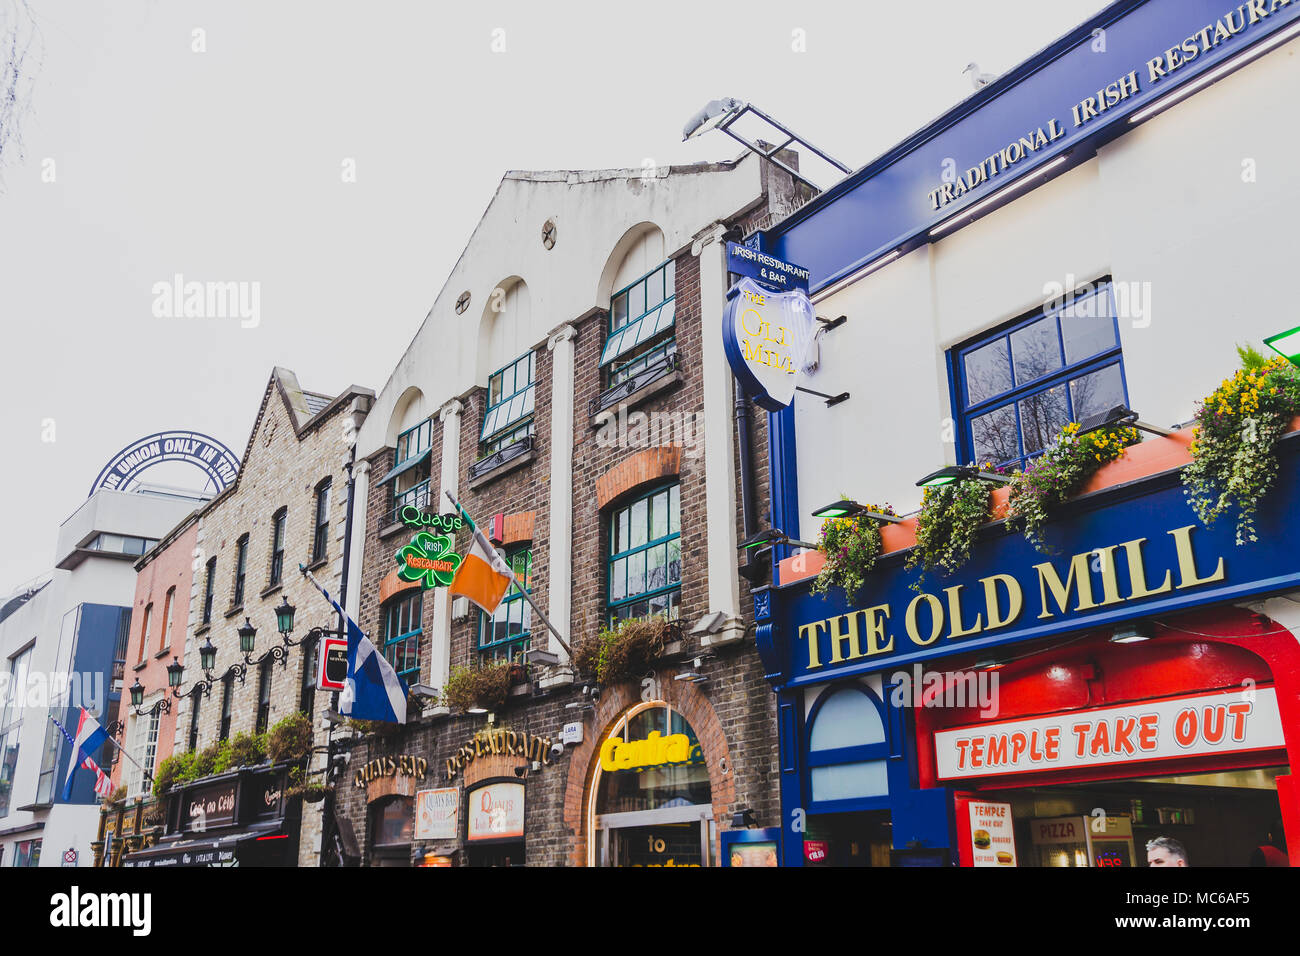 DUBLIN, IRELAND - April 12th, 2018: pubs in the Temple Bar neighbourhood of Dublin city centre, the area is famous for its popular traditional pubs an - Stock Image